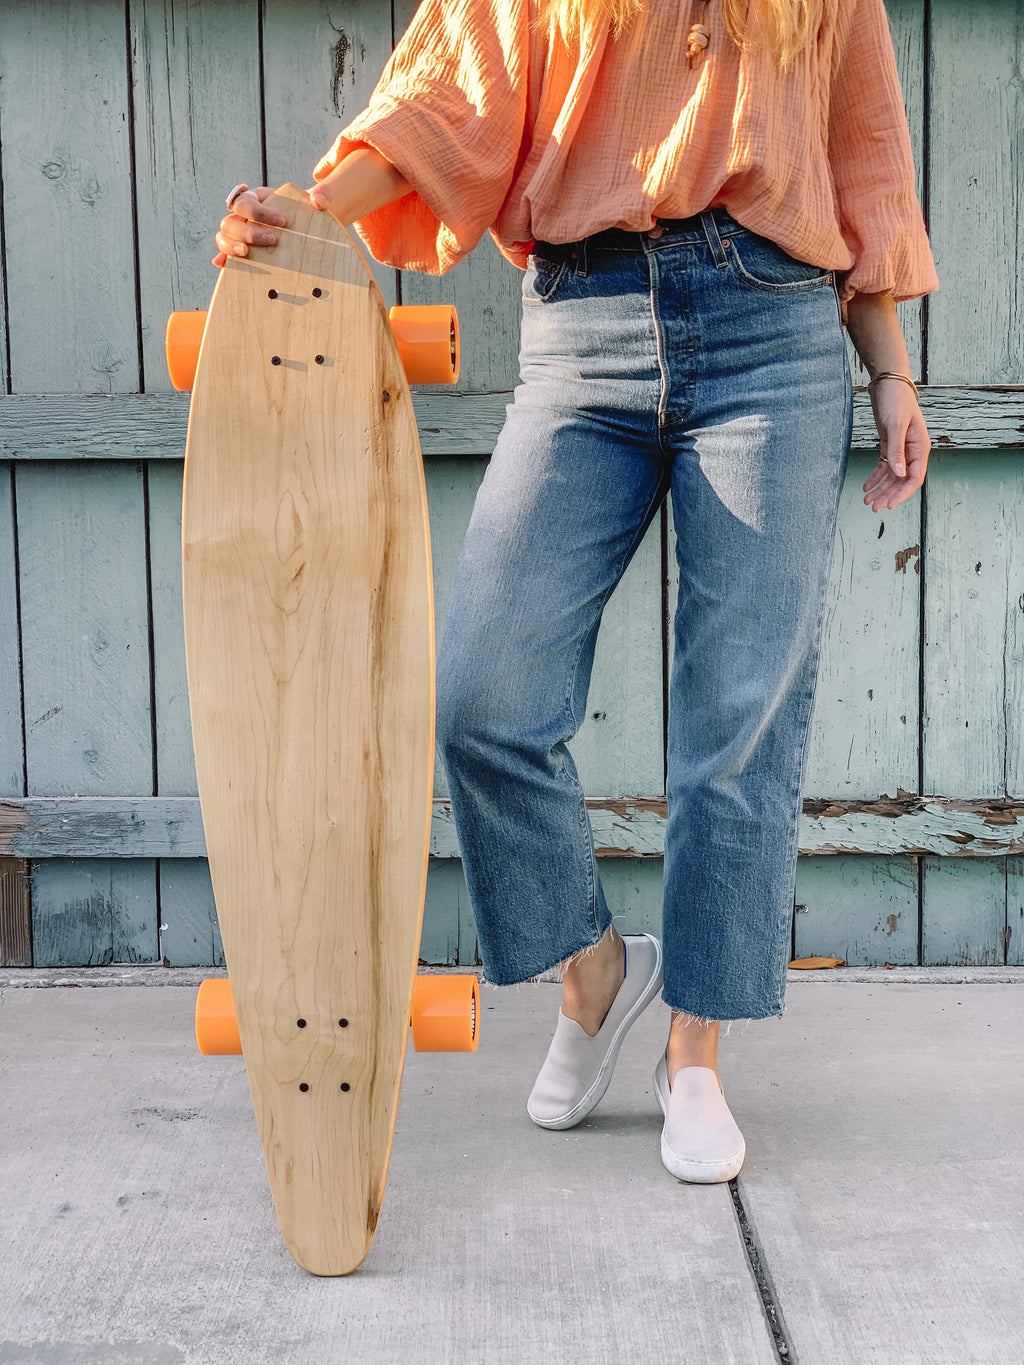 The Nui Longboard (Maple) 42 inch